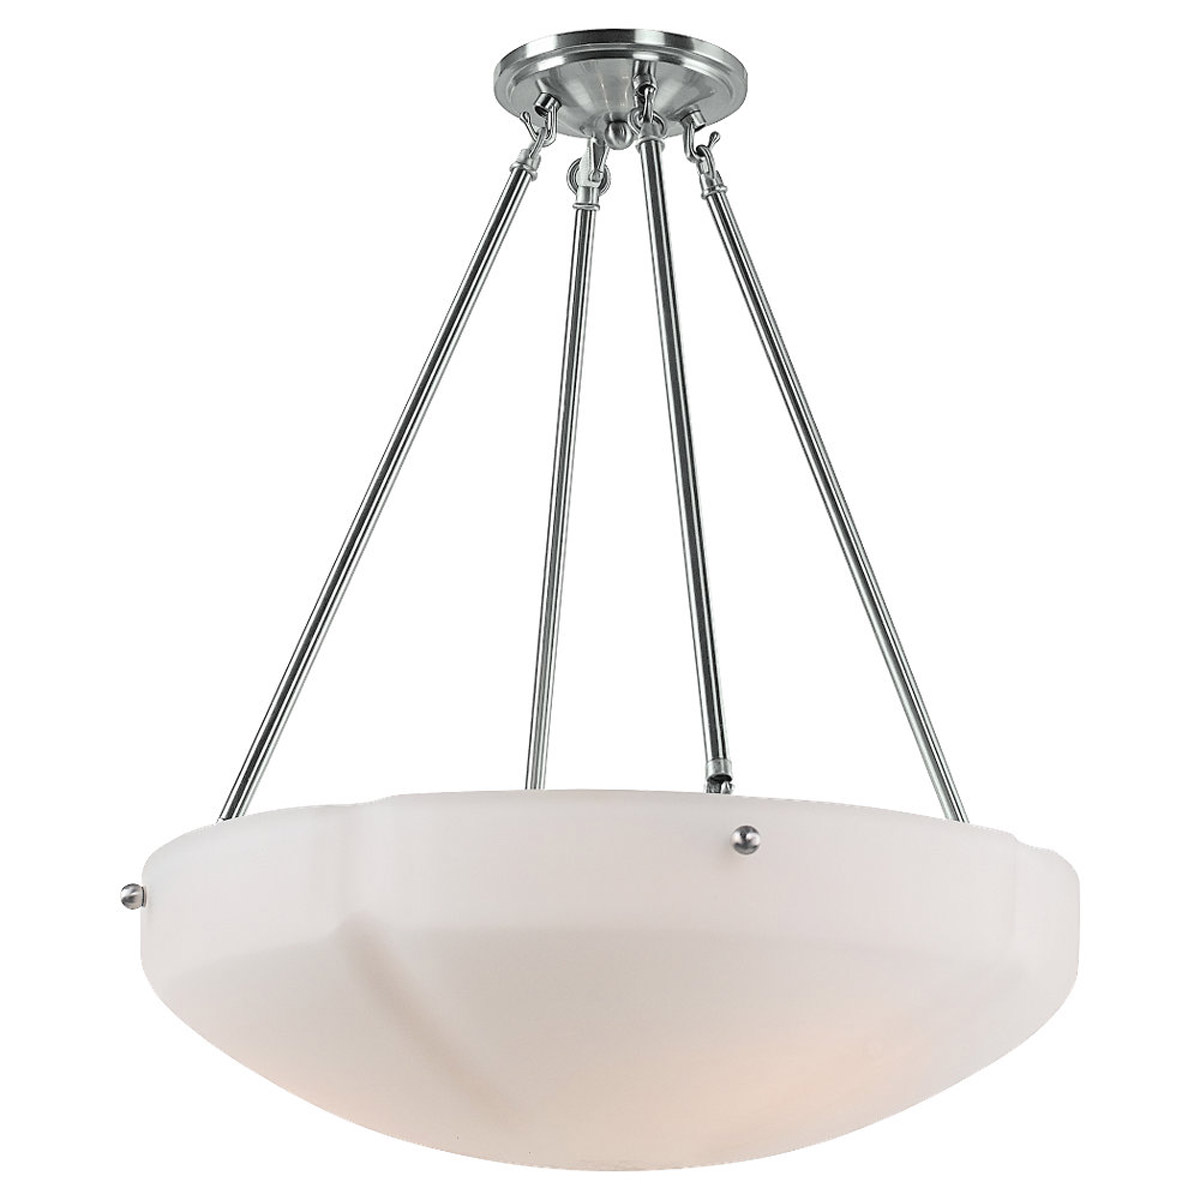 Sea Gull Lighting Century 3 Light Pendant in Brushed Nickel 65474-962